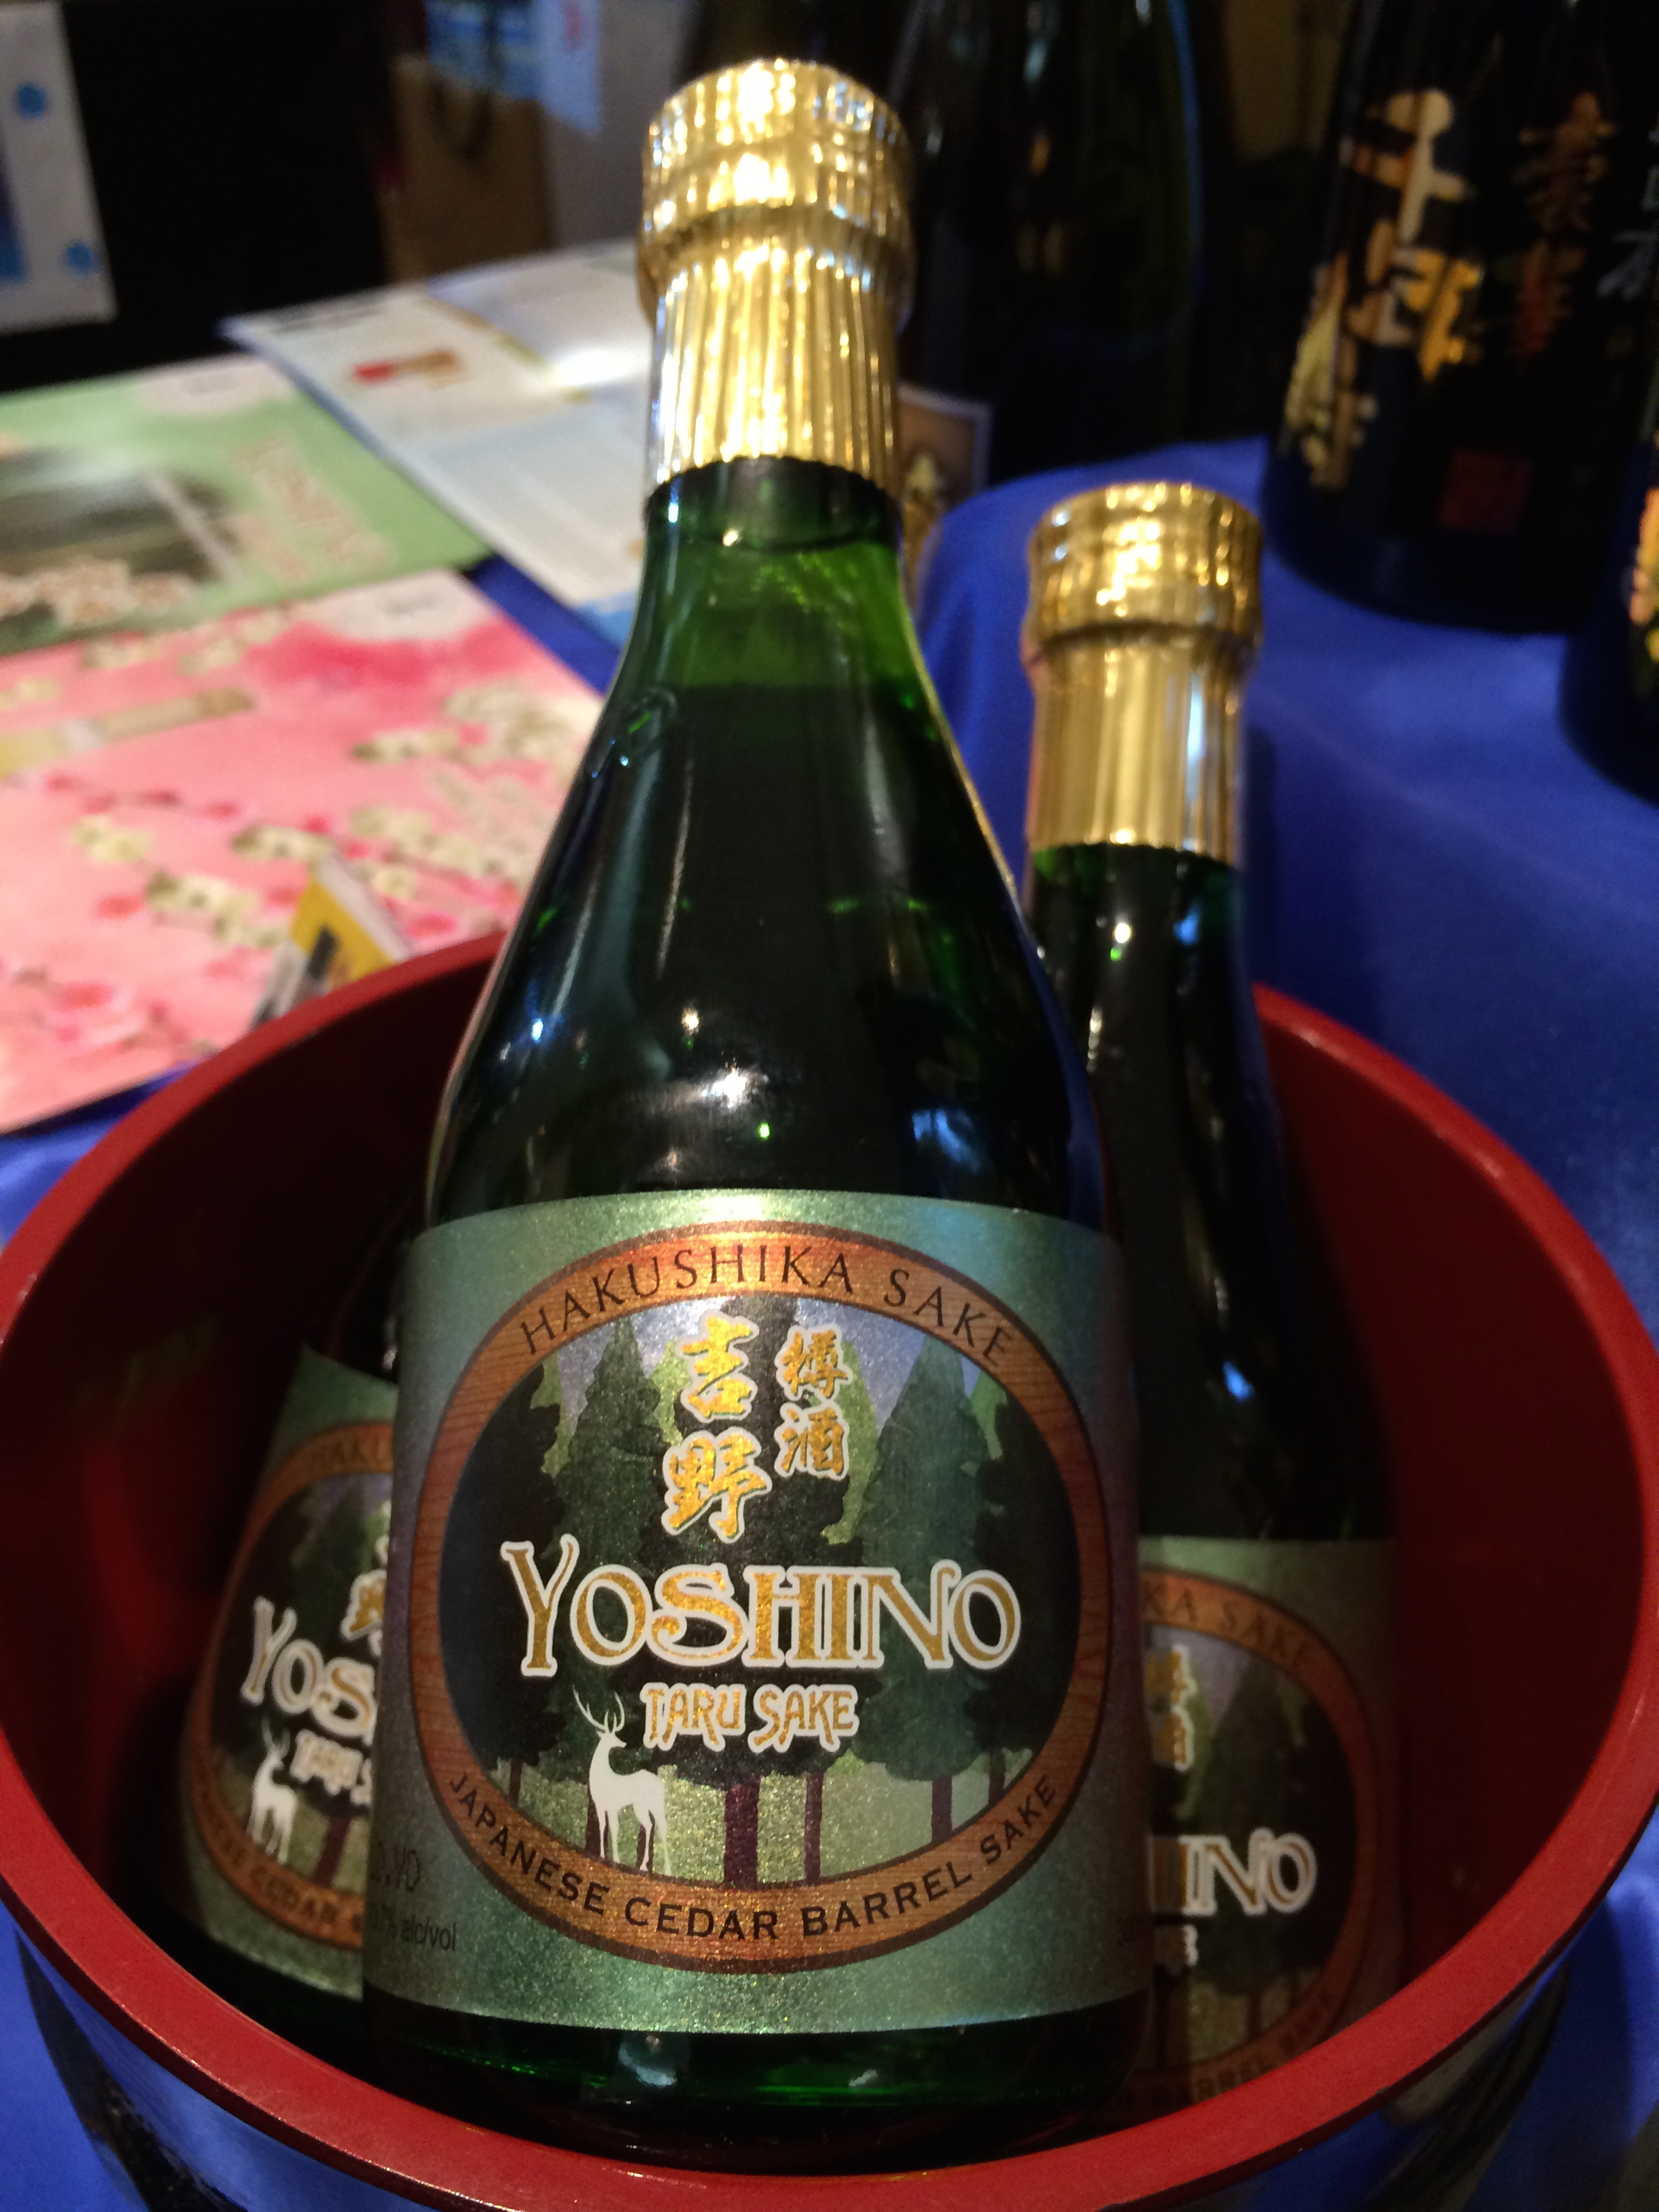 Yoshino taru sake from Yoshino forrest in Nara is briefly aged in cedar casks, and has a fragrant and smooth finish.